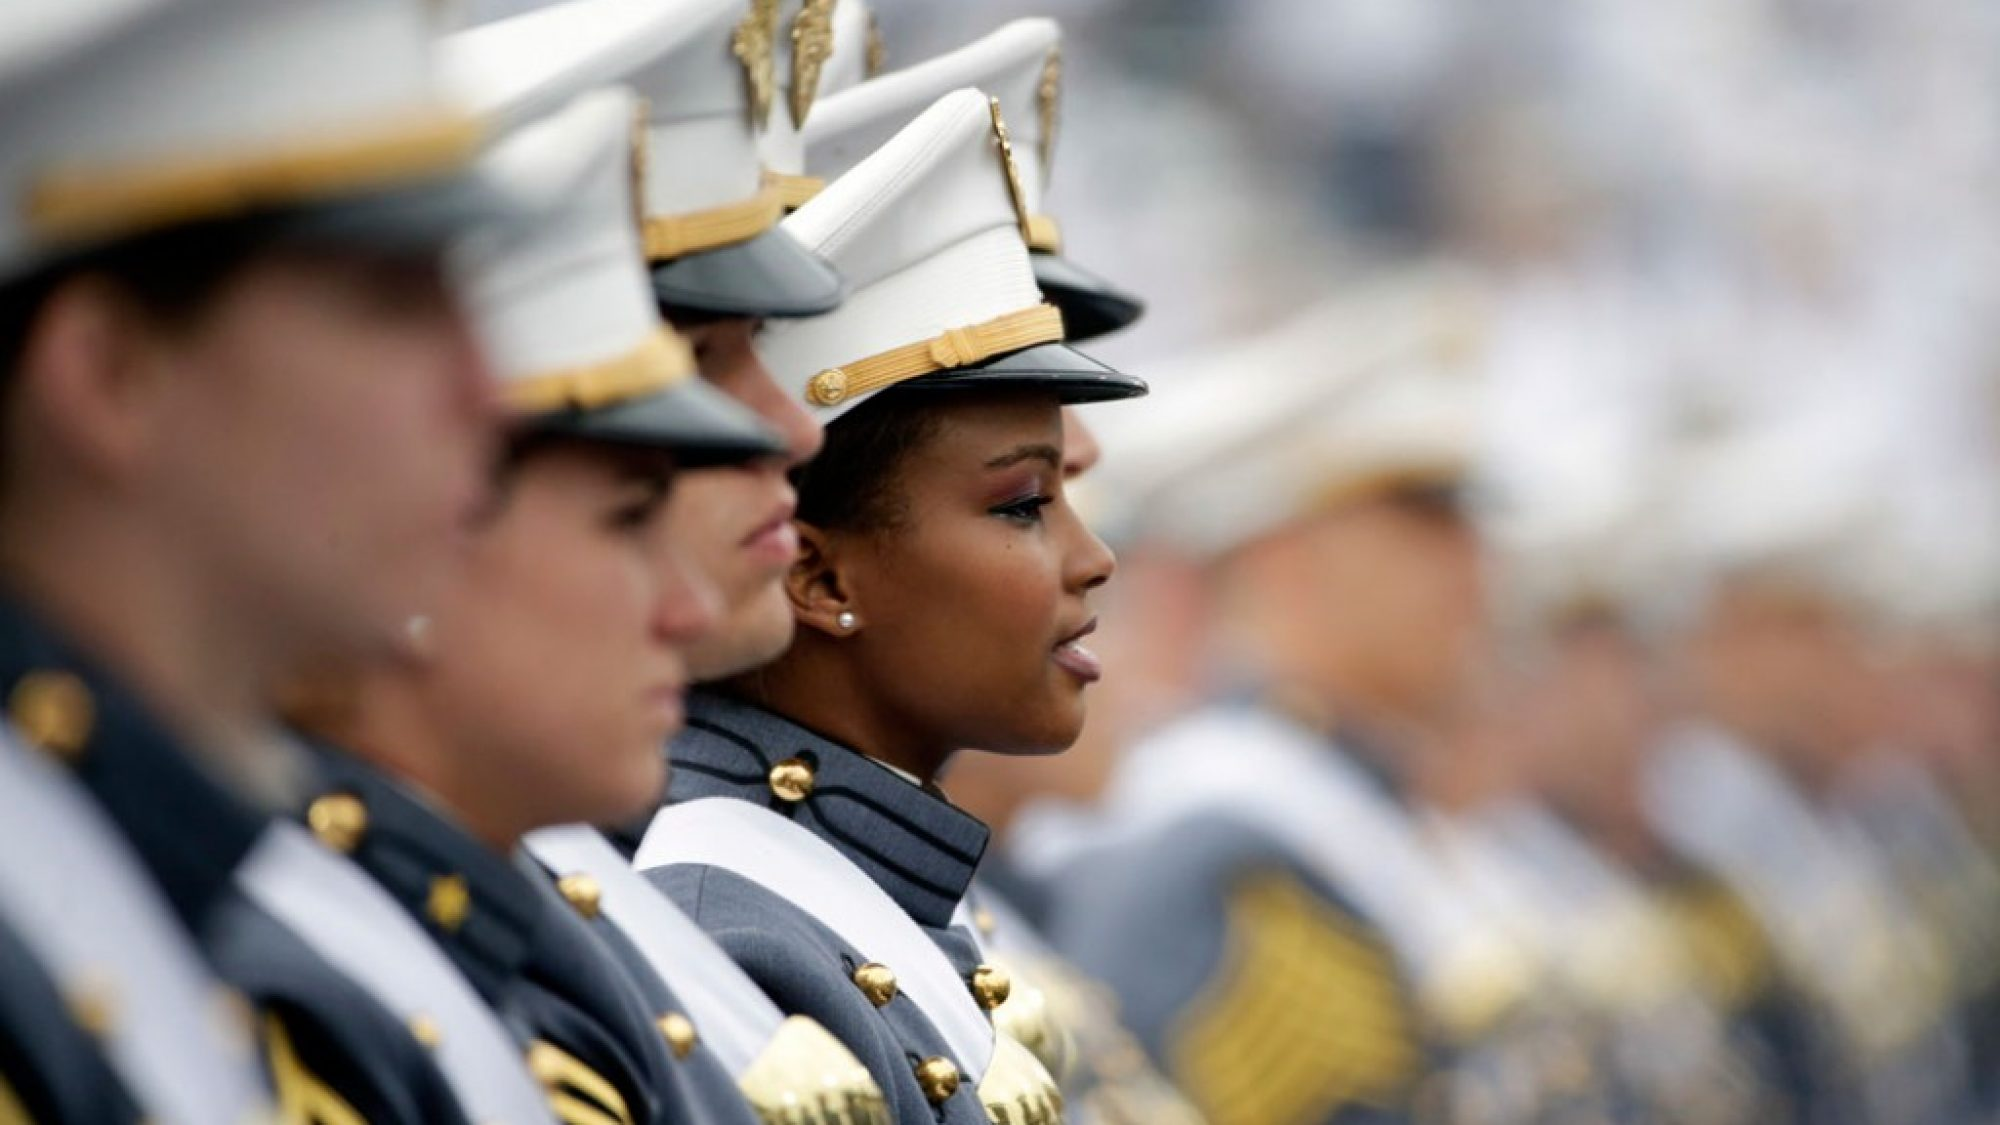 A multi-racial group of military officers